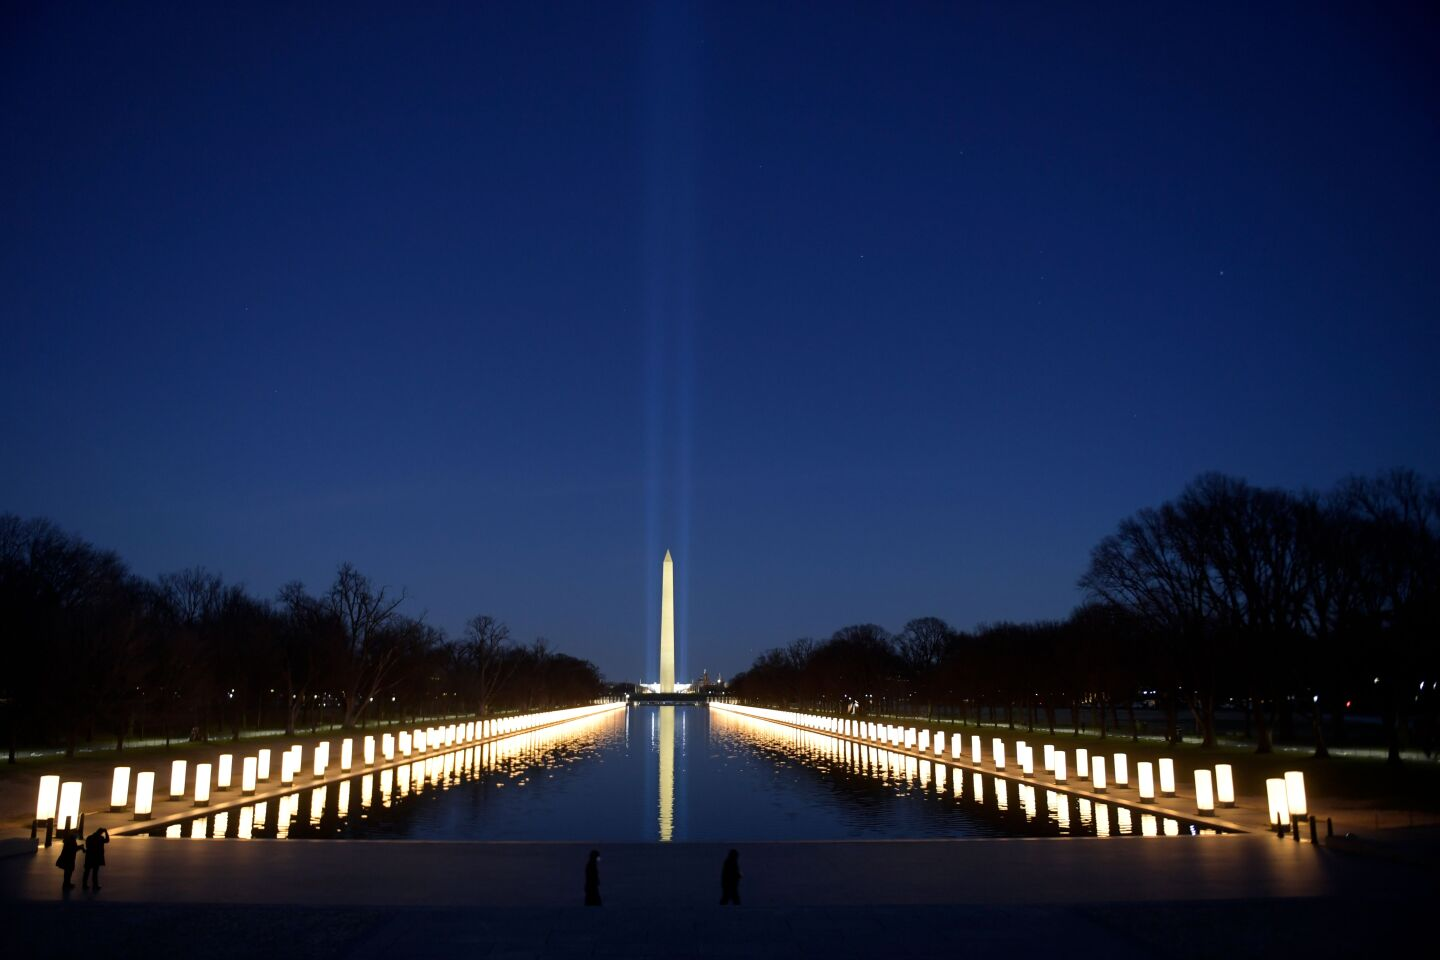 The Reflecting Pool is lighted as a Covid-19 Memorial in front of the Washington Monument in Washington, DC, on January 19, 2021 during a vigil to honor the lives of those lost to Covid-19. (Photo by Patrick T. FALLON / AFP) (Photo by PATRICK T. FALLON/AFP via Getty Images)